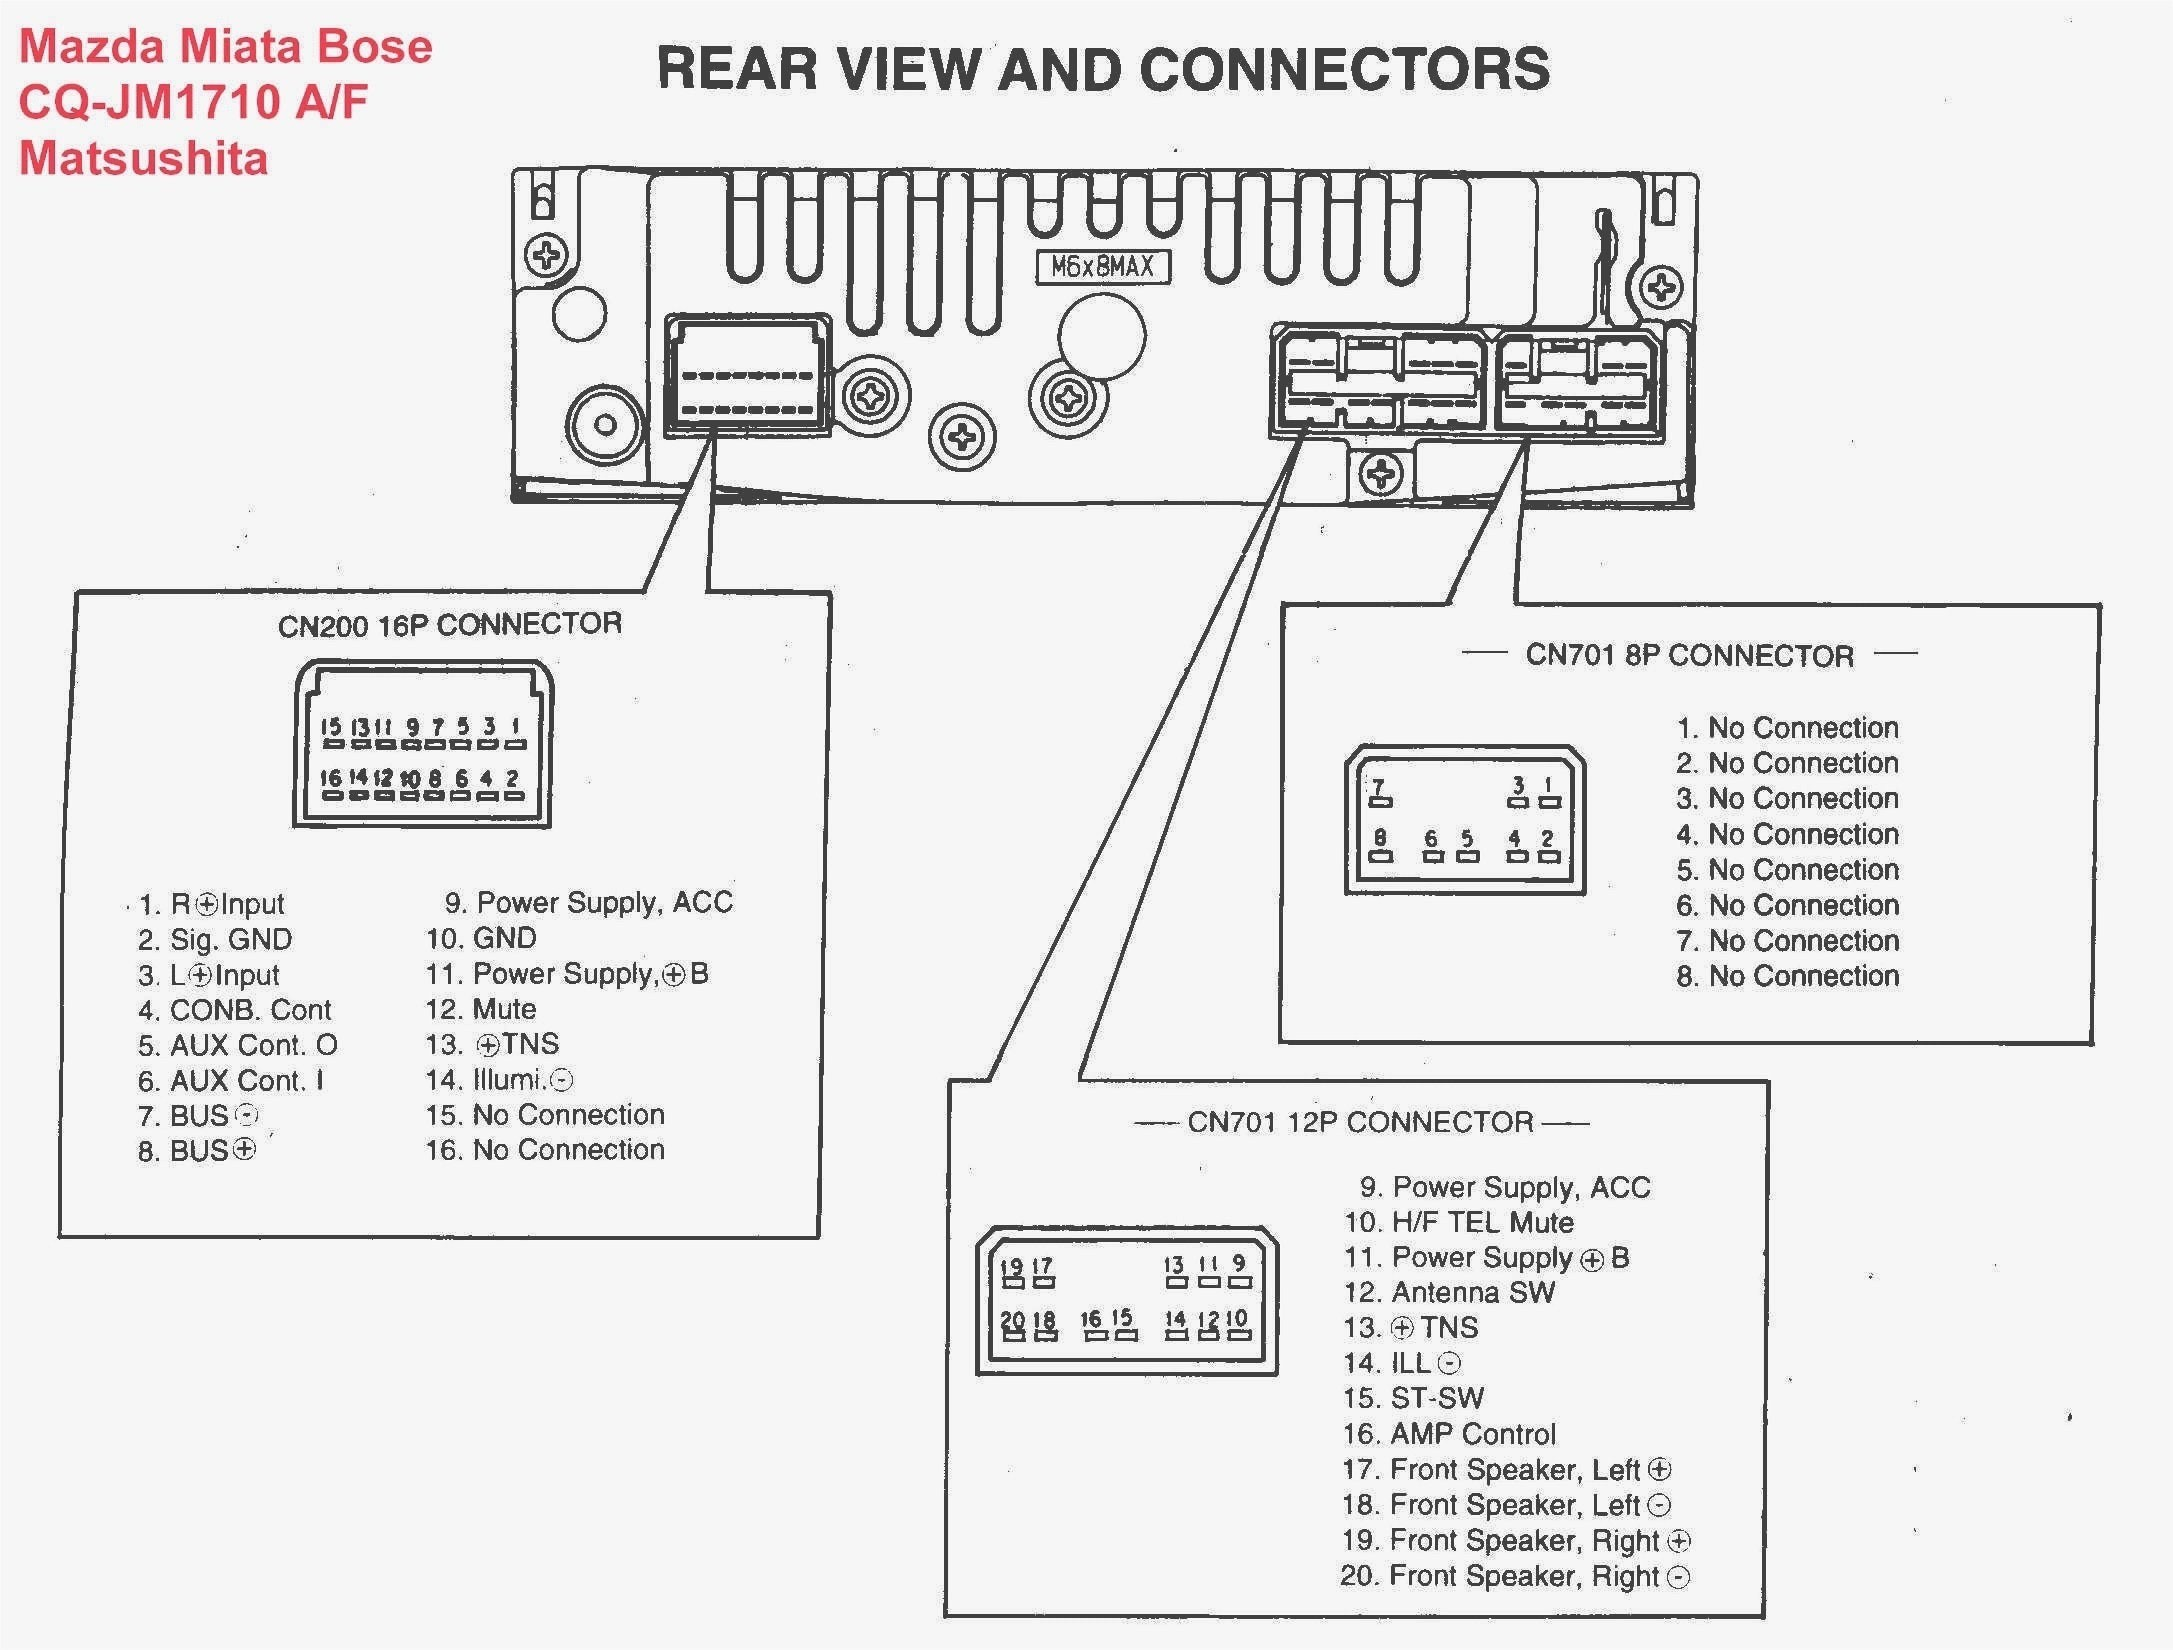 Color Wiring Diagram Car Stereo Wiring Diagram Colors Fresh Pioneer Car Stereo Wiring Diagram Free Of Color Wiring Diagram Car Stereo